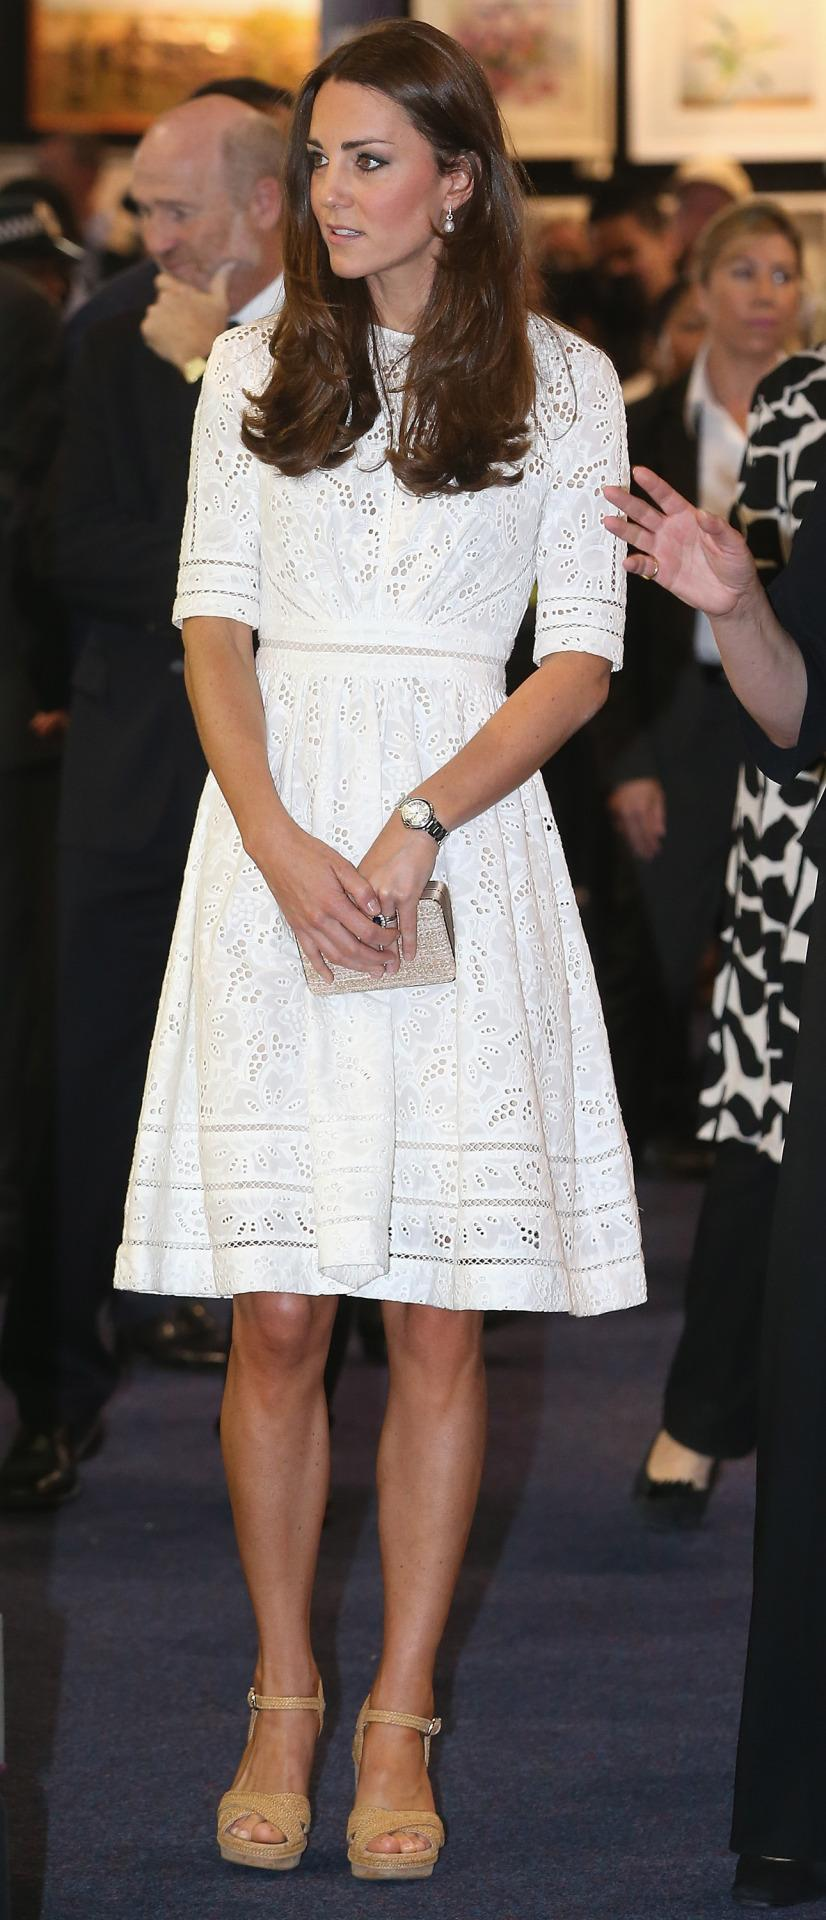 <p>Kate wore a feminine broderie anglaise dress by Australian label, Zimmerman, for an easter show in the country. She paired the look with espadrille wedges by Stuart Weitzman and a neutral L.K. Bennett clutch. </p><p><i>[Photo: PA]</i></p>